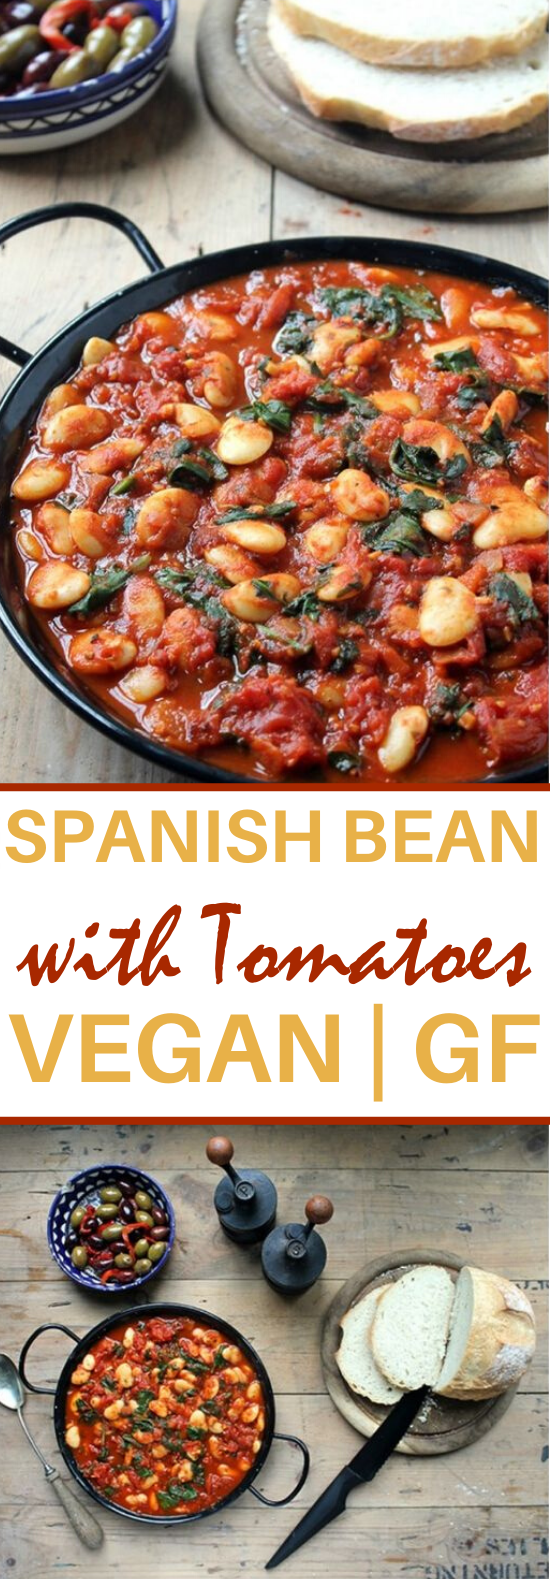 Vegan Spanish Beans with Tomatoes #vegan #dinner #meatless #soup #glutenfree